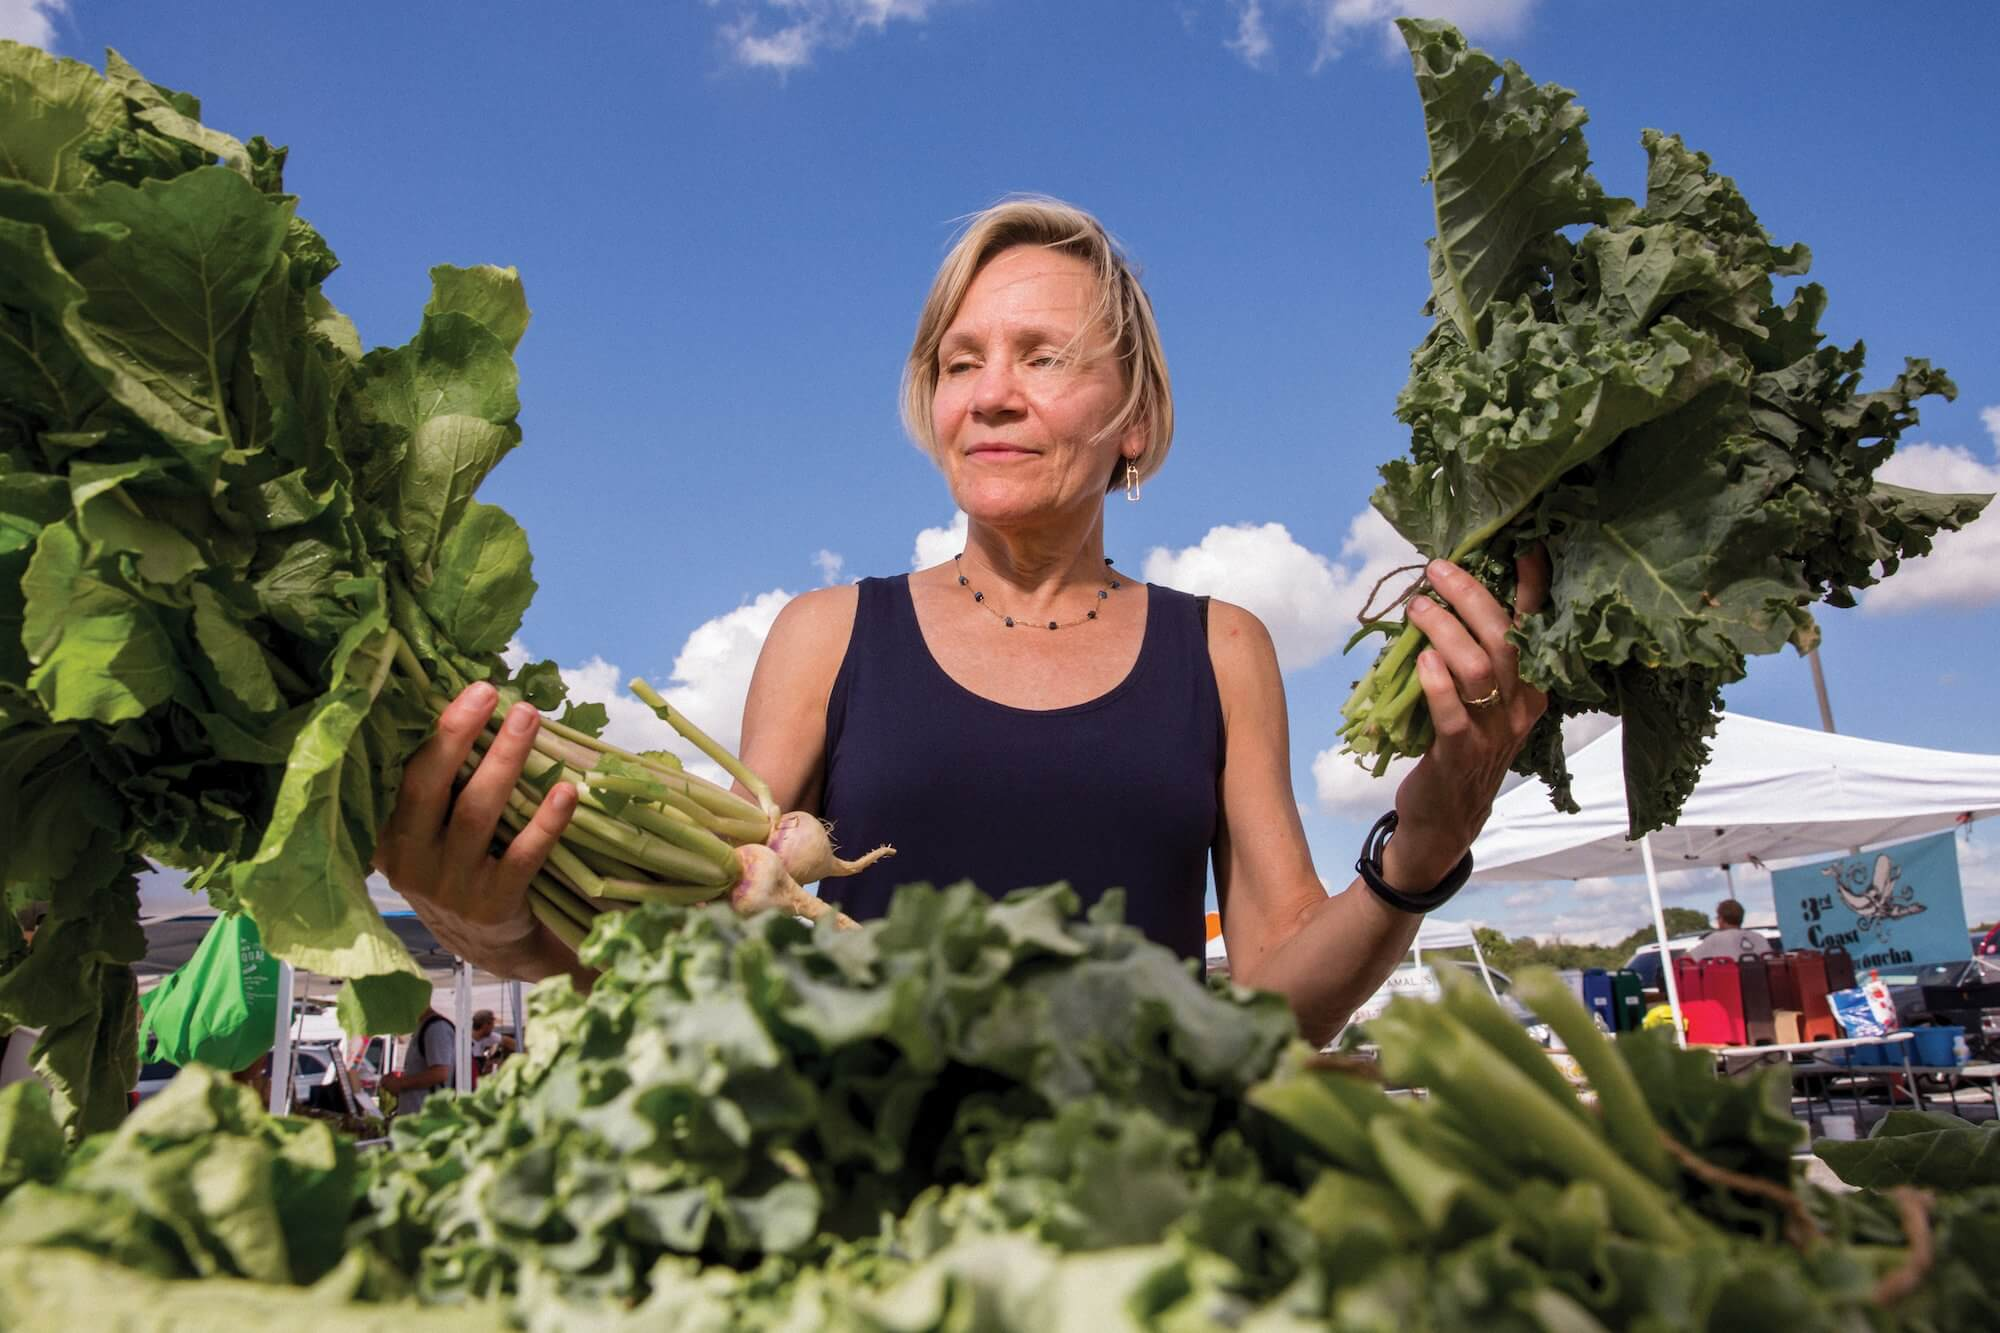 Janet Braam, Ph.D., shopping for vegetables from Atkinson Farms at the Rice University Farmers Market.